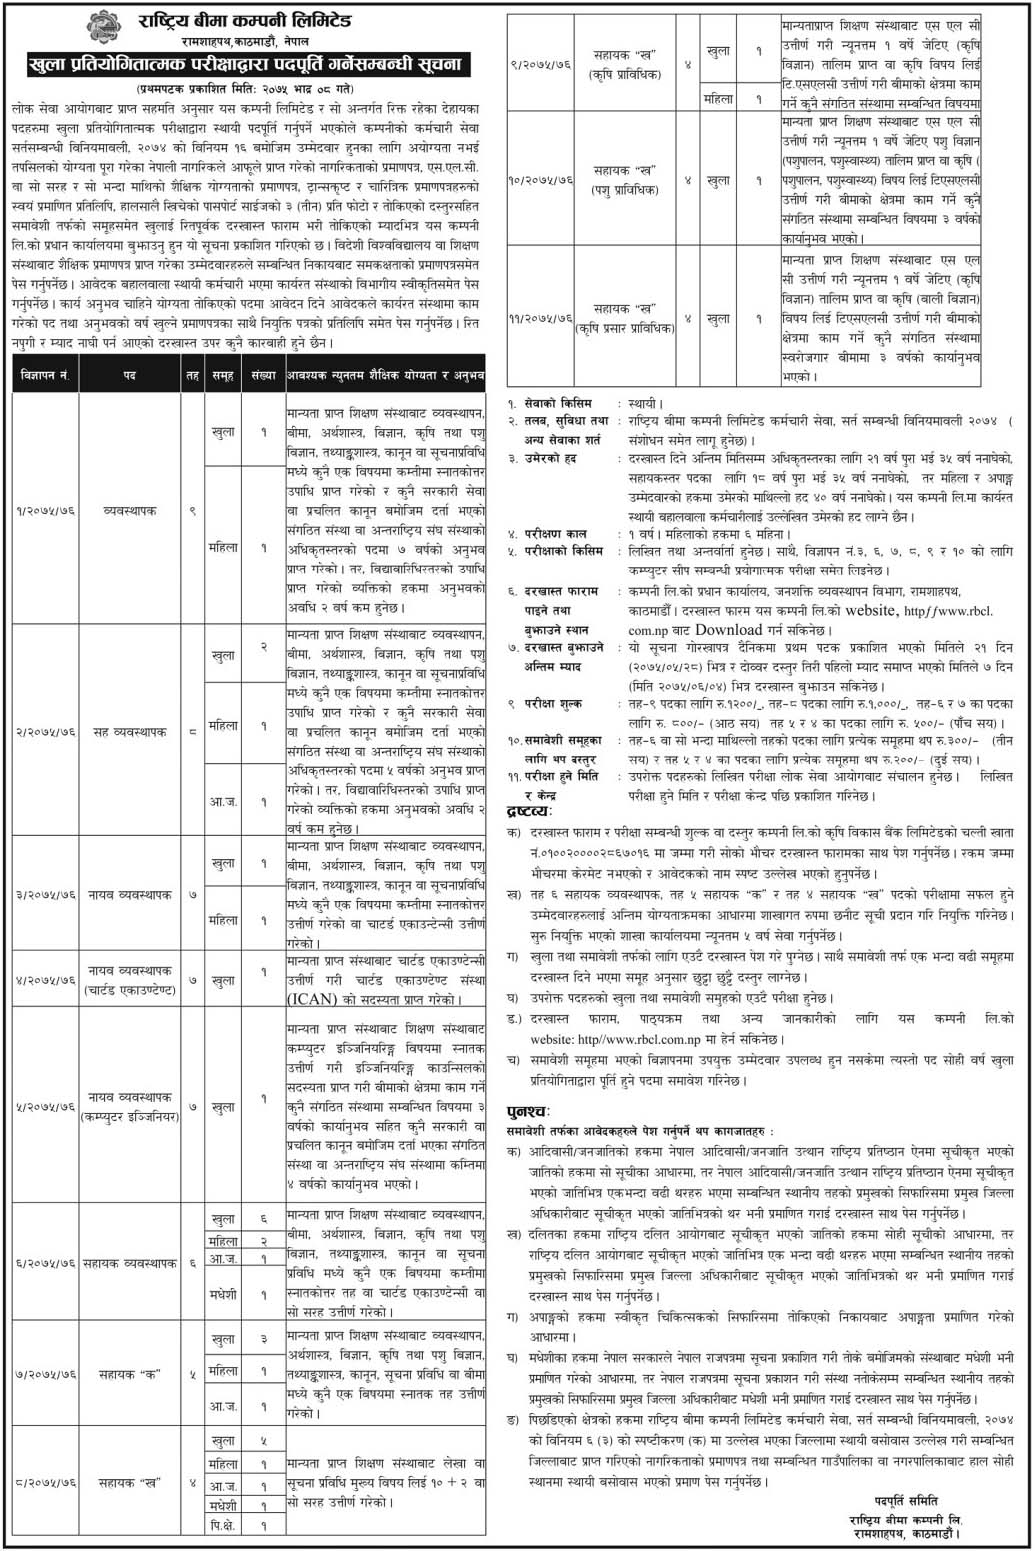 Vacancy Announcement, Rastriya Bima Company Ltd. for Various Posts